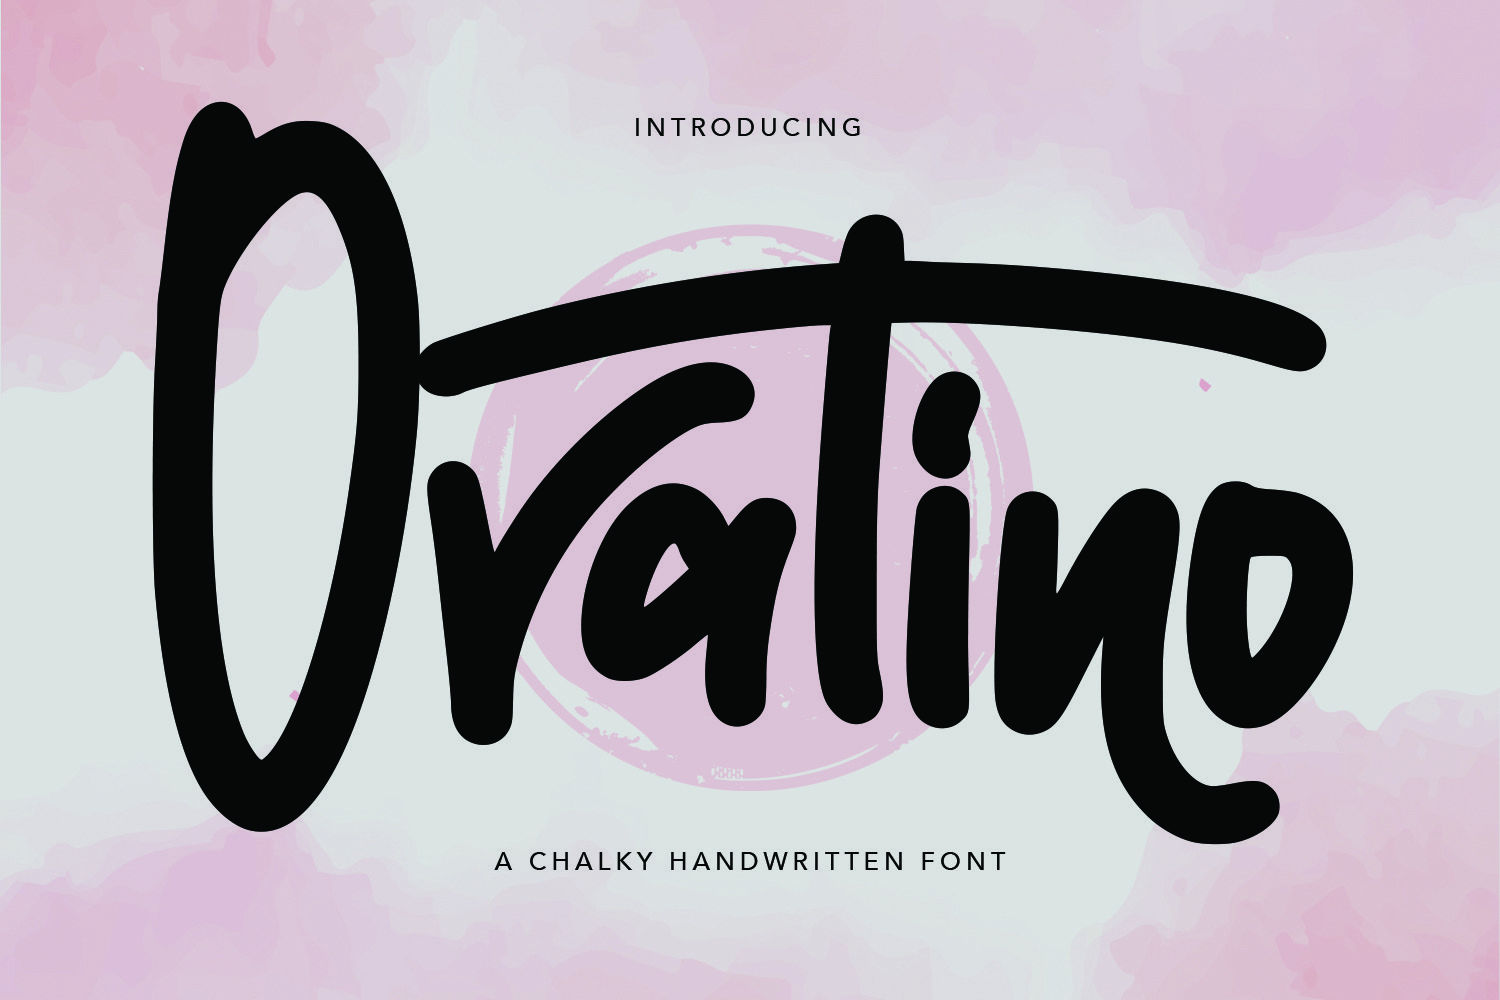 Ovatino - Chalky Handwritten Font example image 1